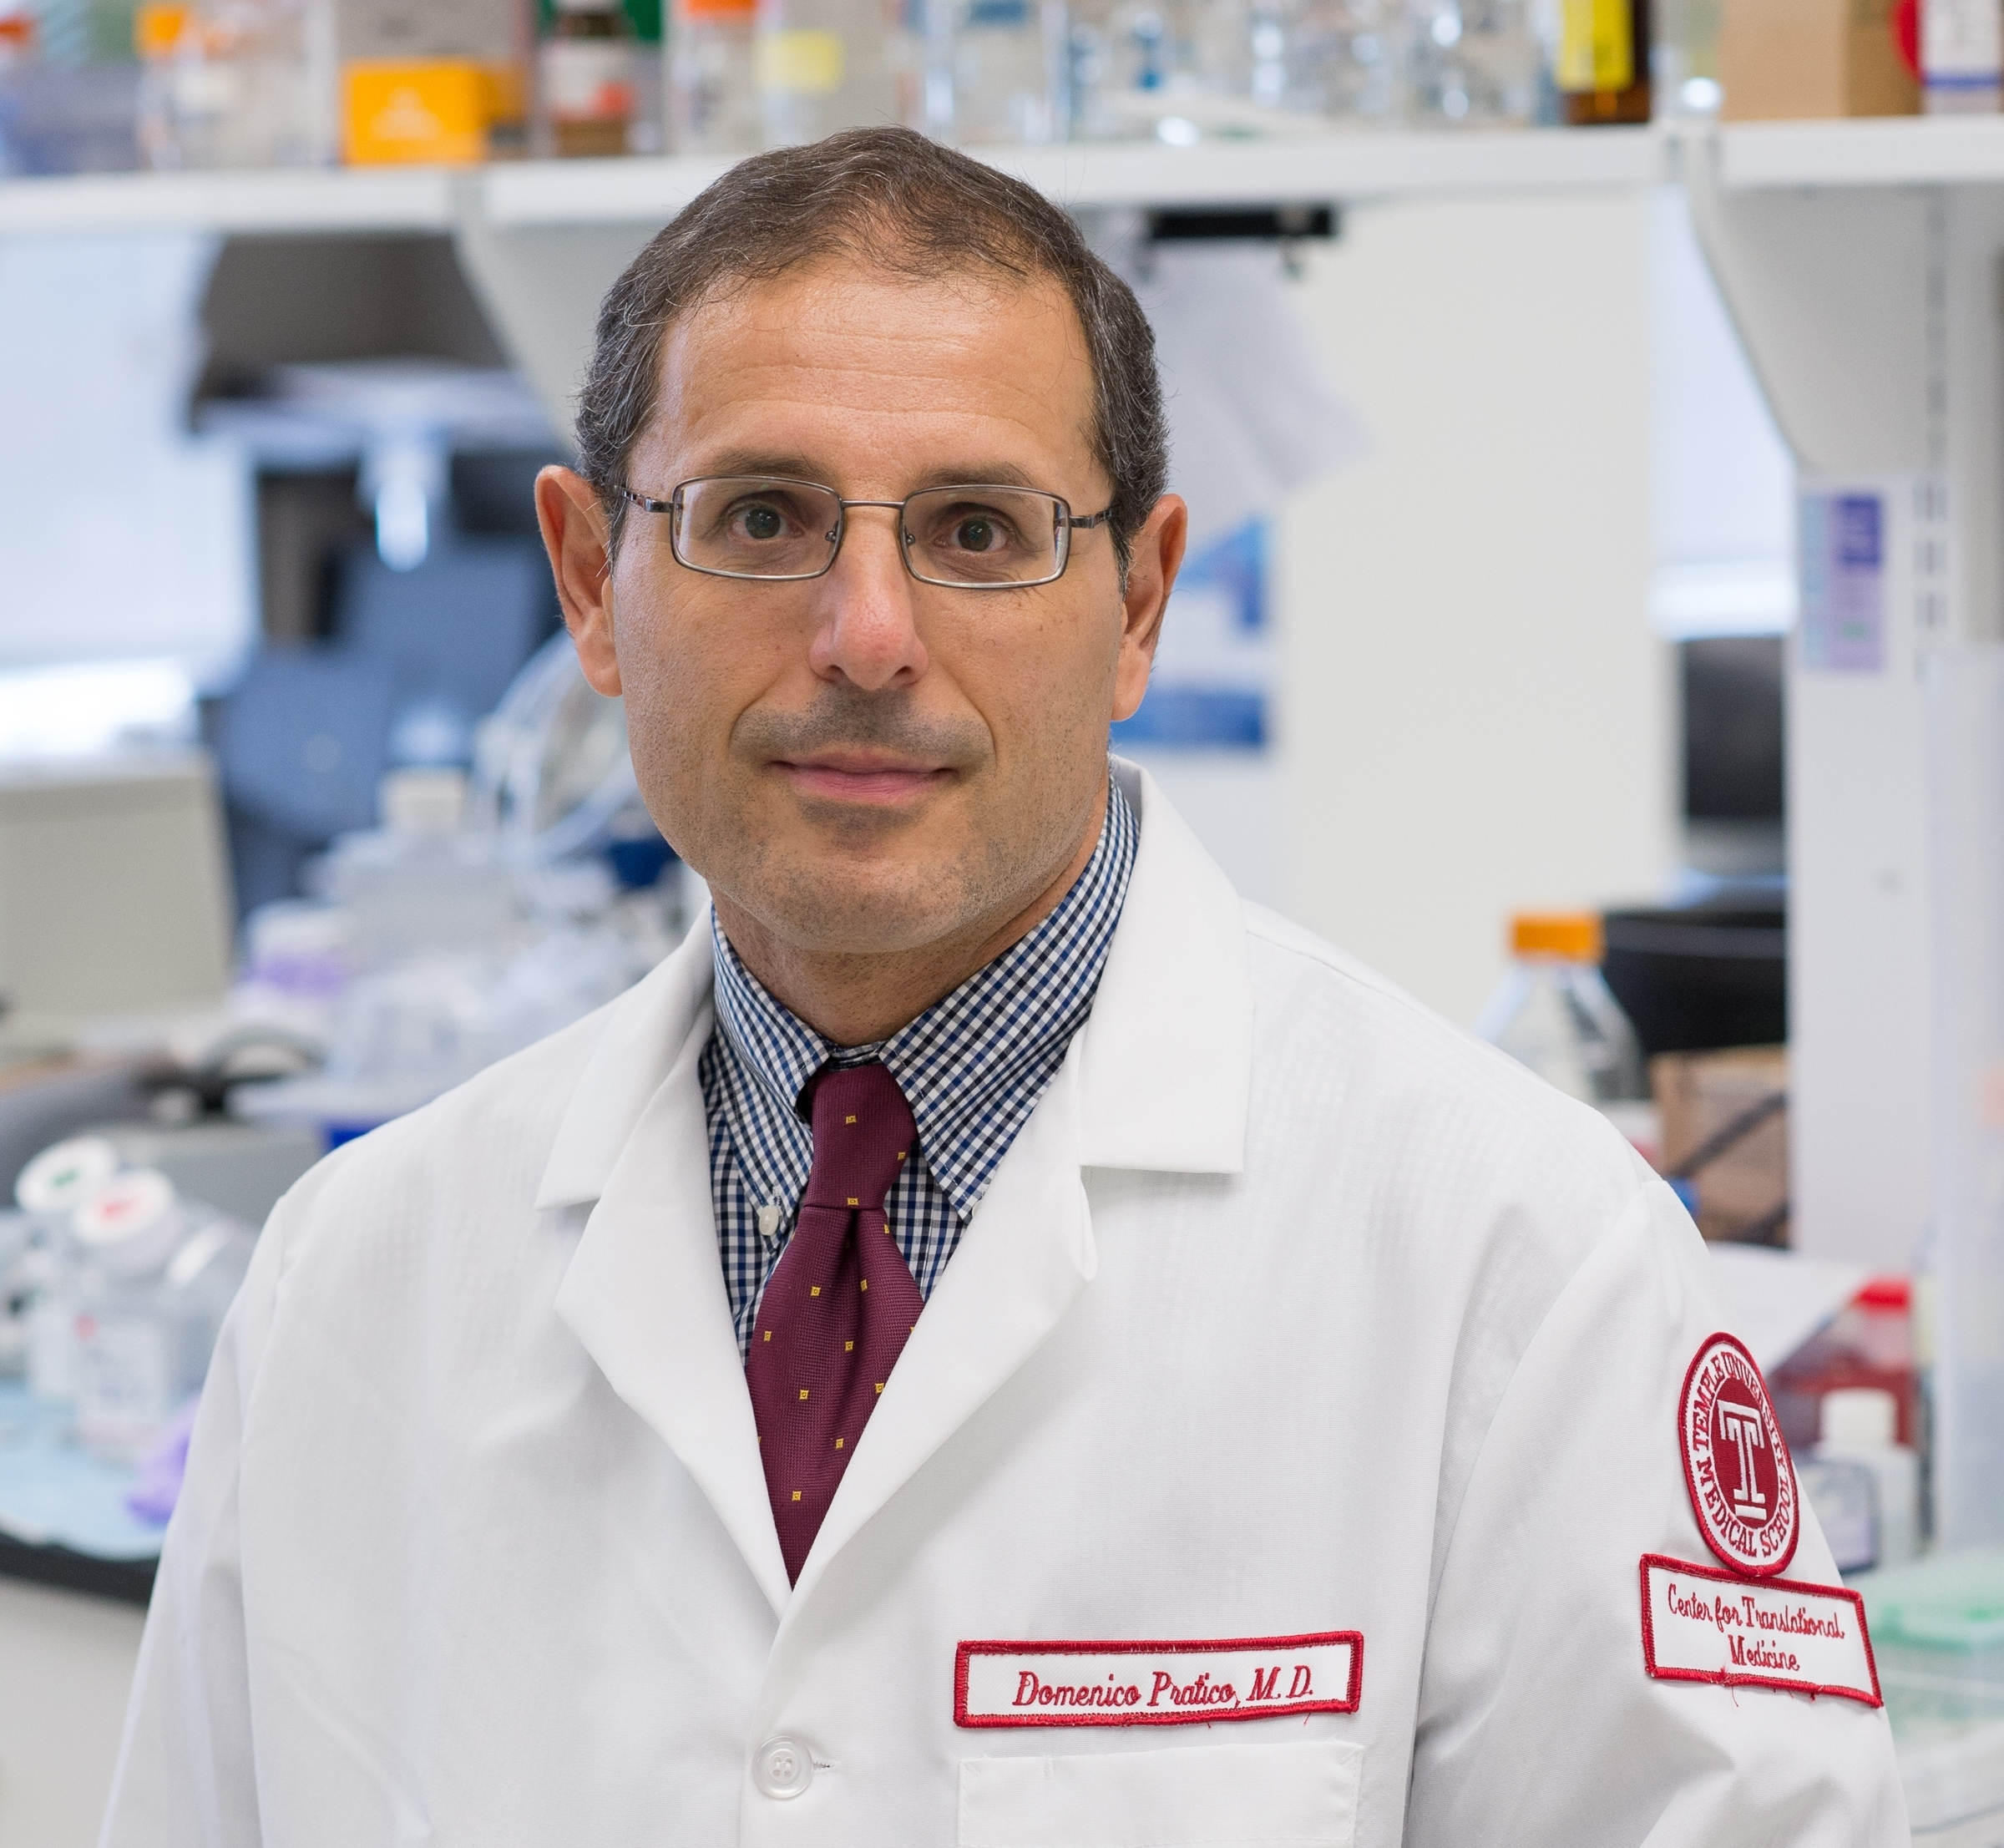 Domenico Pratico is a professor in the departments of pharmacology and microbiology and the Center for Translational Medicine at Lewis Katz School of Medicine at Temple University.